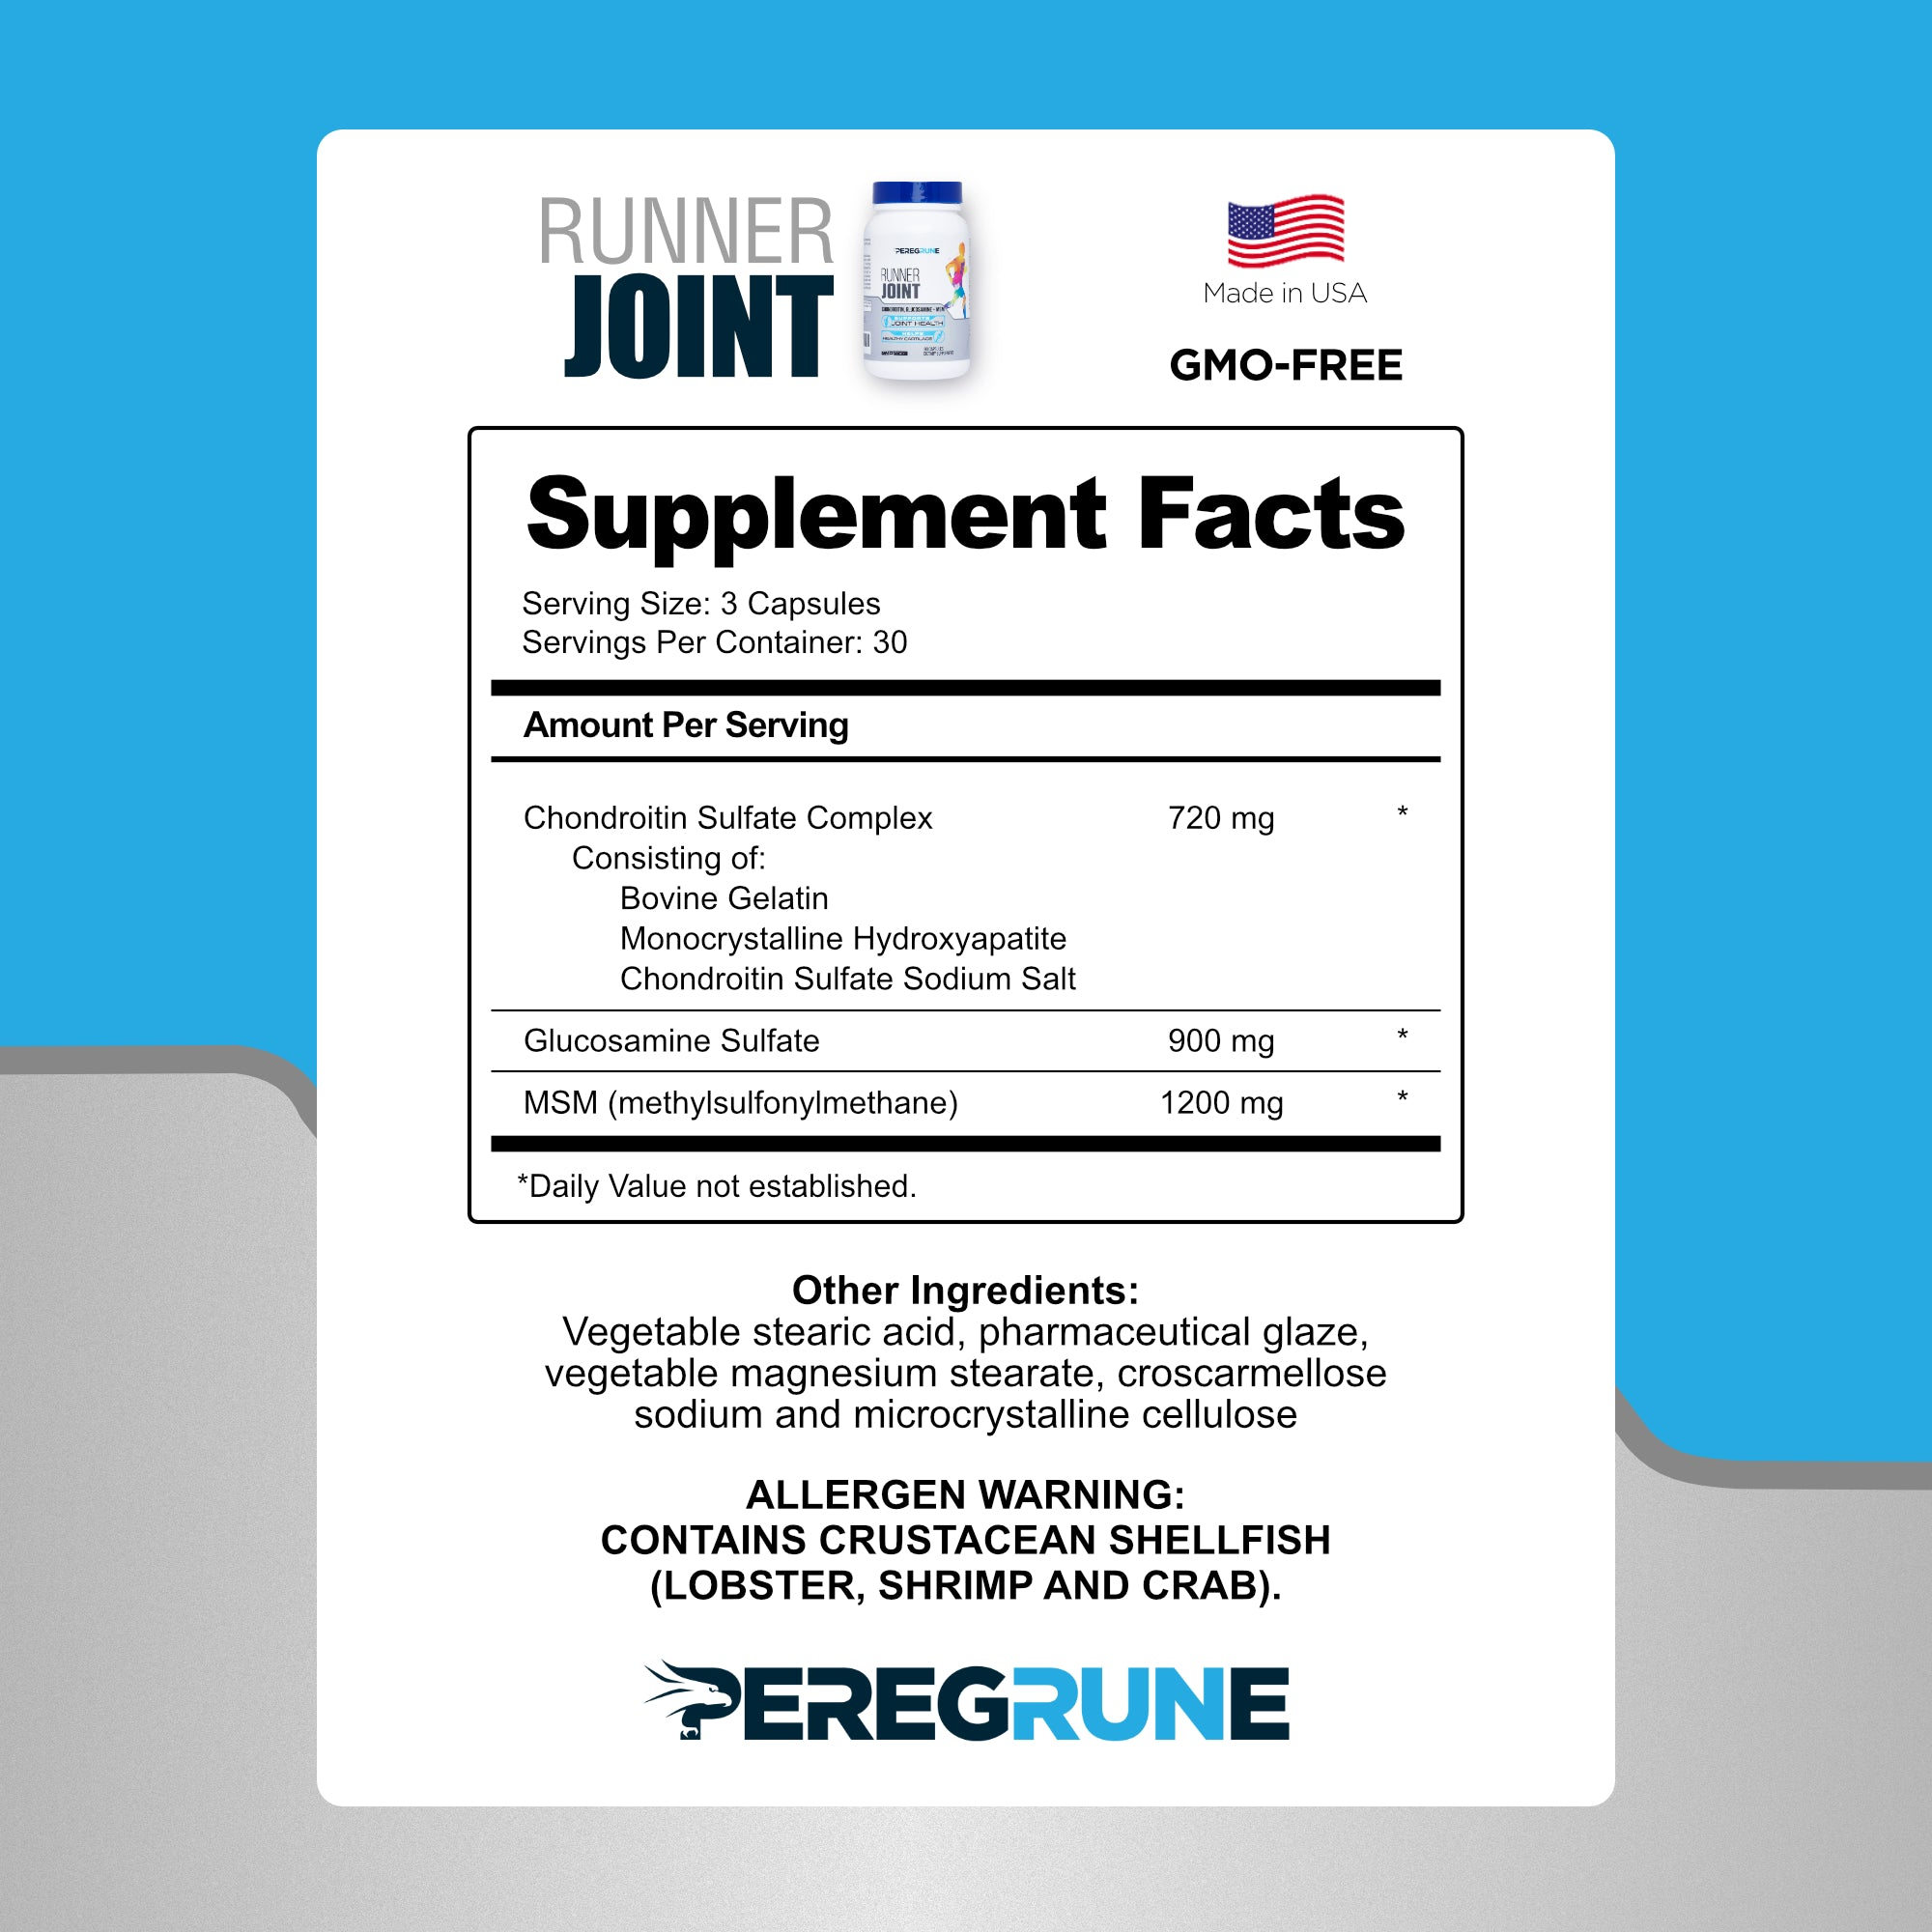 Runner Multivitamin, Joint Support, and Omega-3 Fish Oil (1-Month Supply)